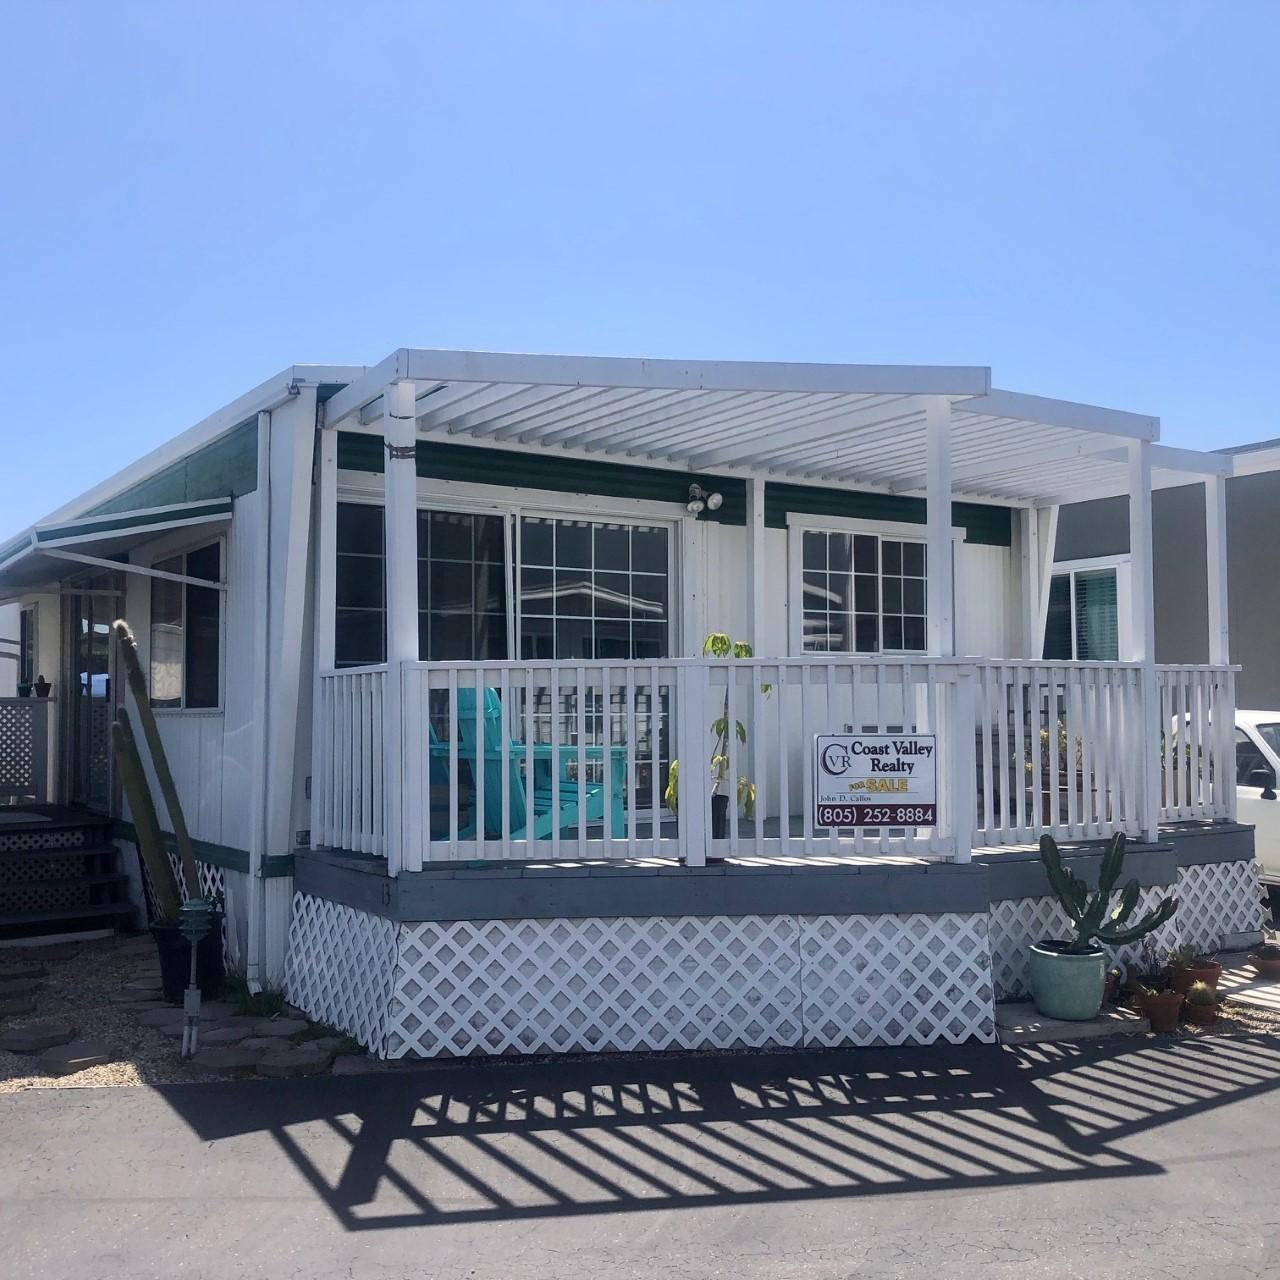 Steps to the beach, this 1966 mobile home has amazing mountain views.  Silver Sands Village is a Resident-Owned Park located on the Salt Marsh & just 2 blocks to the beach. Homeowners own the land & pay property taxes on their space.  This is a 3 bed/2 bath approx 1,080 square foot home.  Rent of $388/mo incl trash, water, mgmt.  Children, pets & guests are welcome; homes may not be rented.  Unfortunately, due to COVID-19, home is not actively being shown.   Sold ''As-Is'' due to minor exterior cosmetic updates required (paint, steps, etc).  There has been lots of  interest in replacing this unit with a new dream beach home.  Contact agent for much more info about this unique Resident-Owned Park, the replacement process and this amazing location on the Salt Marsh, just steps to the beach. Listing agent is an 18-year resident of the Silver Sands Community, a long time (former) member of the Board of Directors and has extensive experience in the sale of units as well as the purchase, financing and installation of new, custom designed homes in the community, so please inquire for more information.